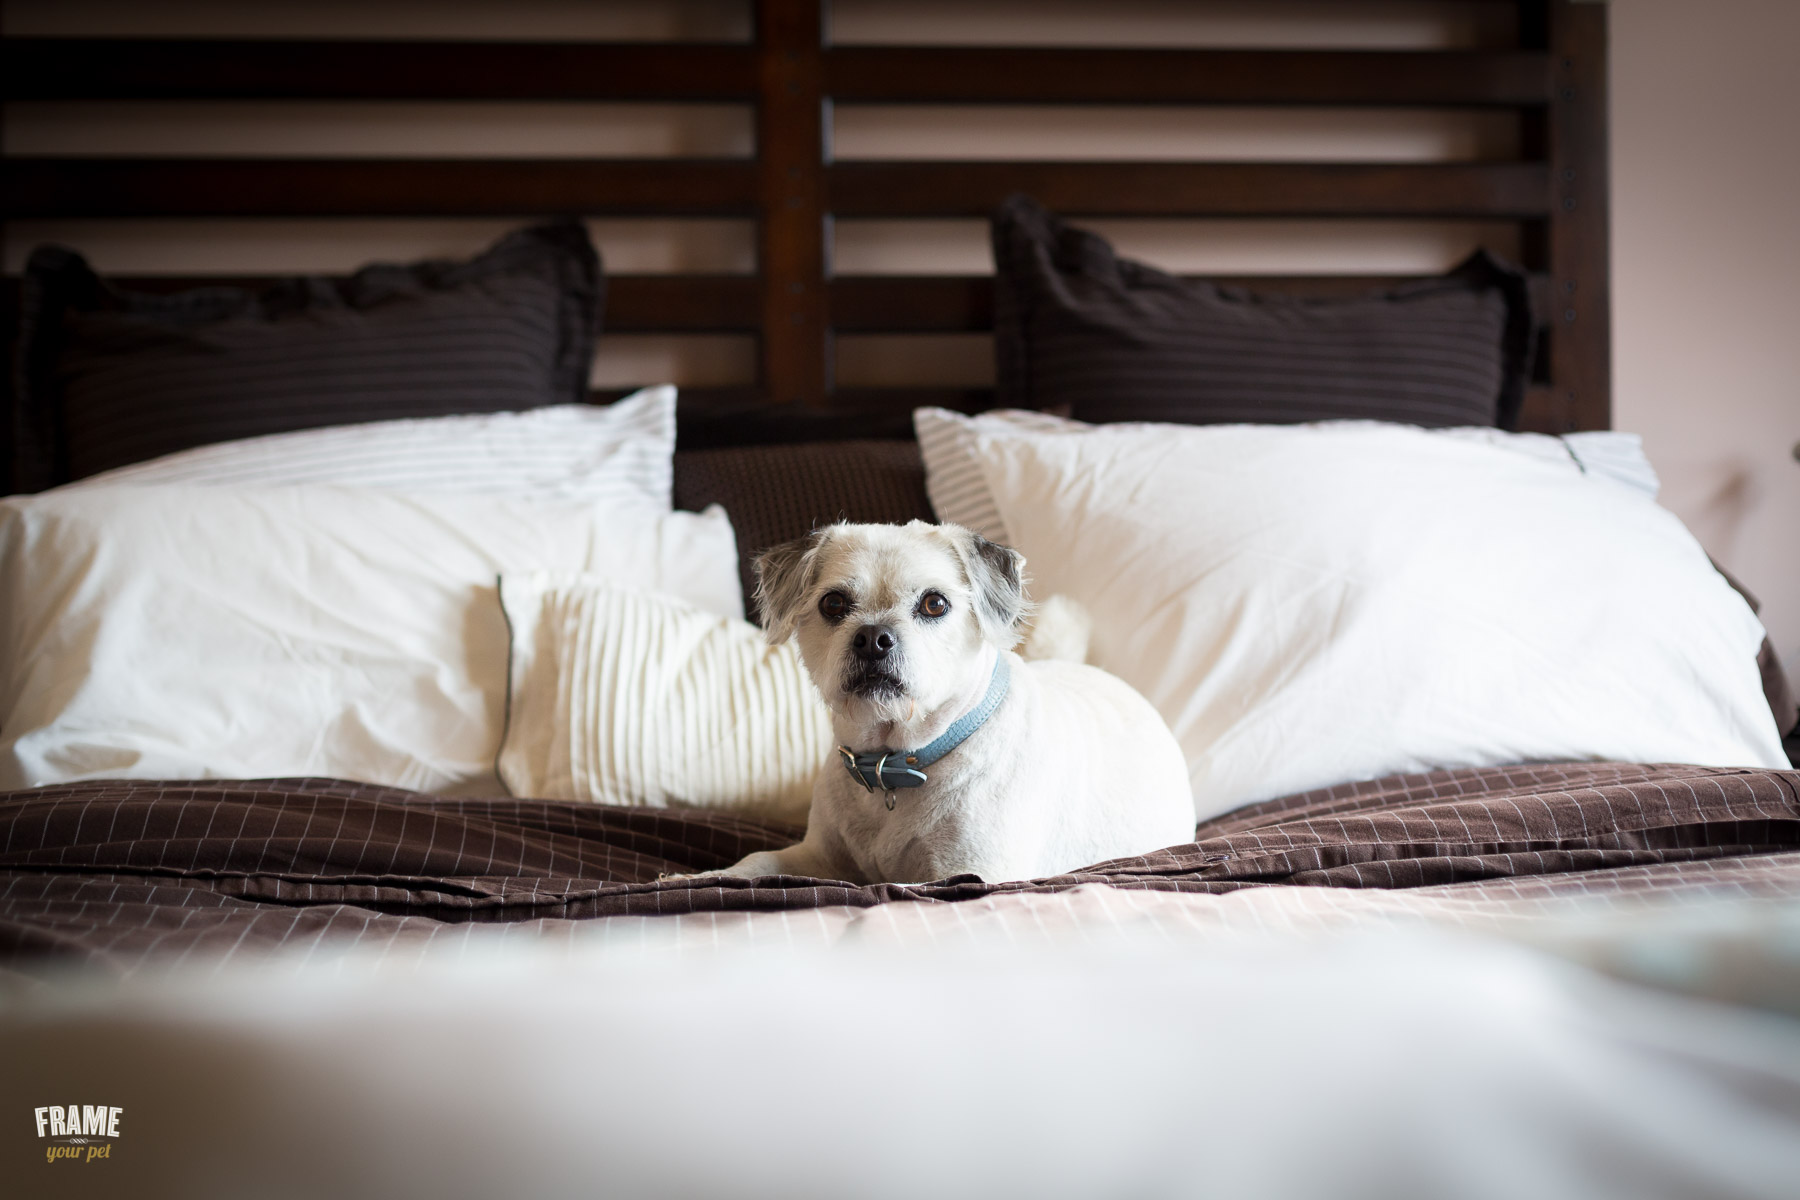 rescue-dog-on-bed-pet-photographer.jpg